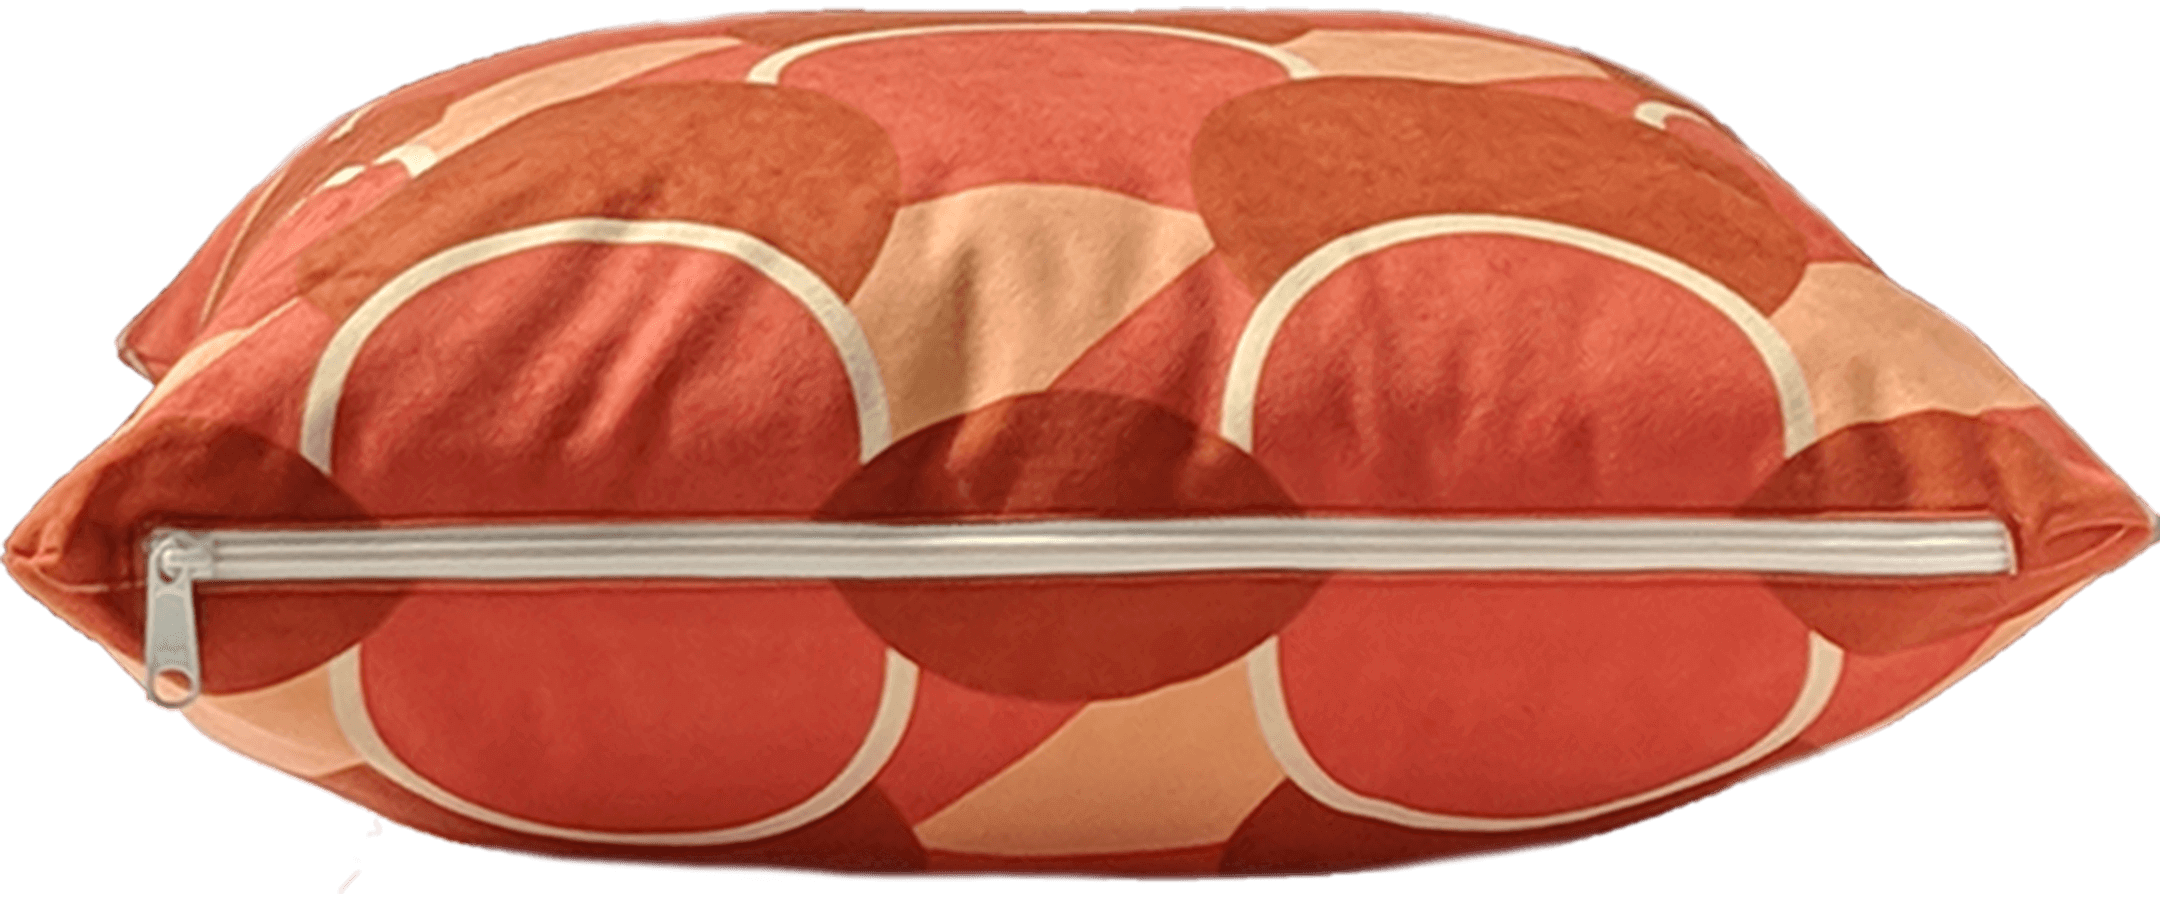 Orange removable washable throw pillow with zipper showing